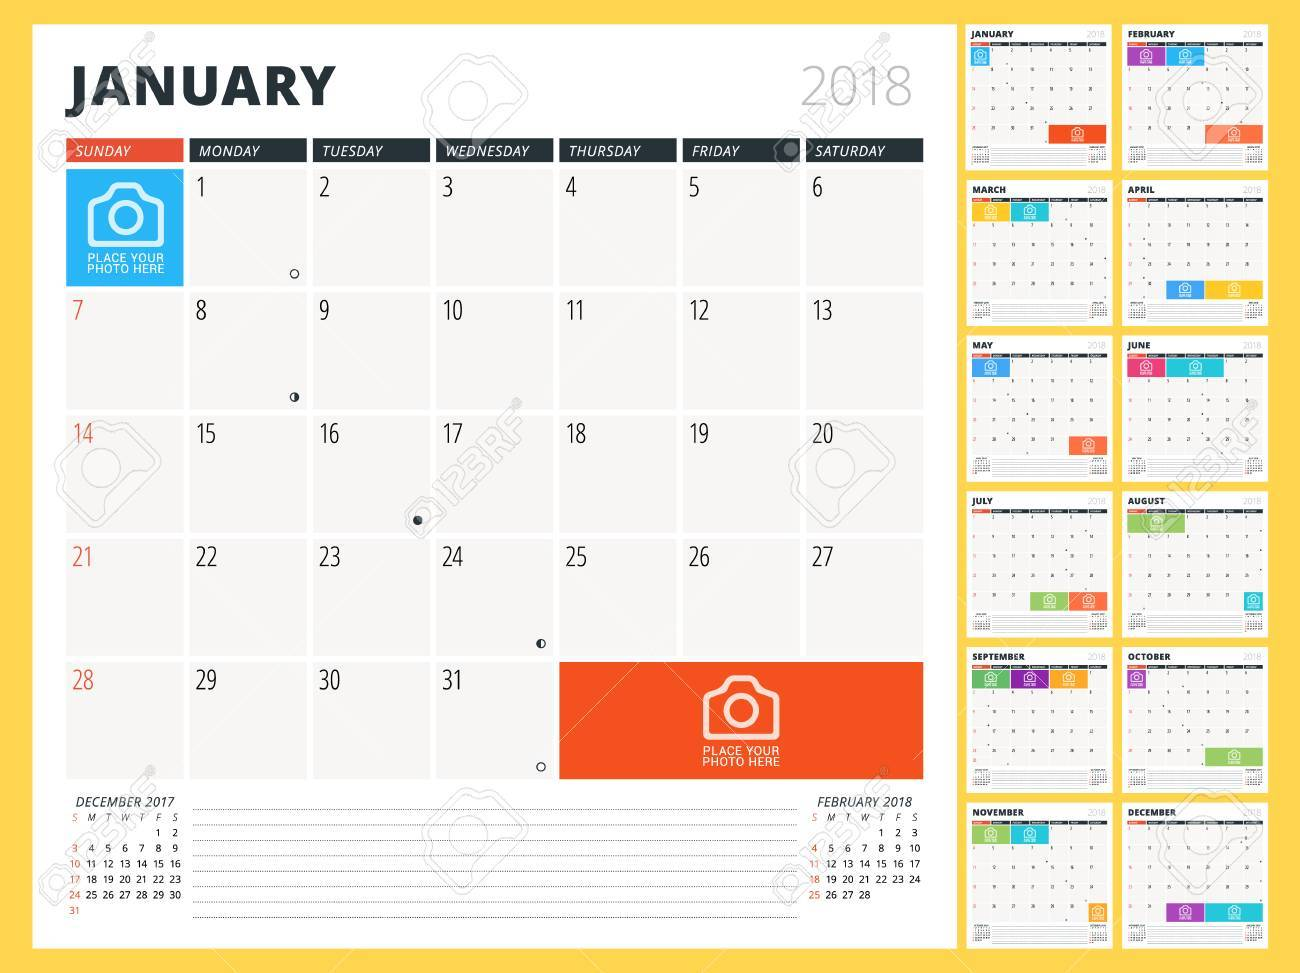 Calendar Planner For 2018 Year Design Template Week Starts On Sunday Set Of